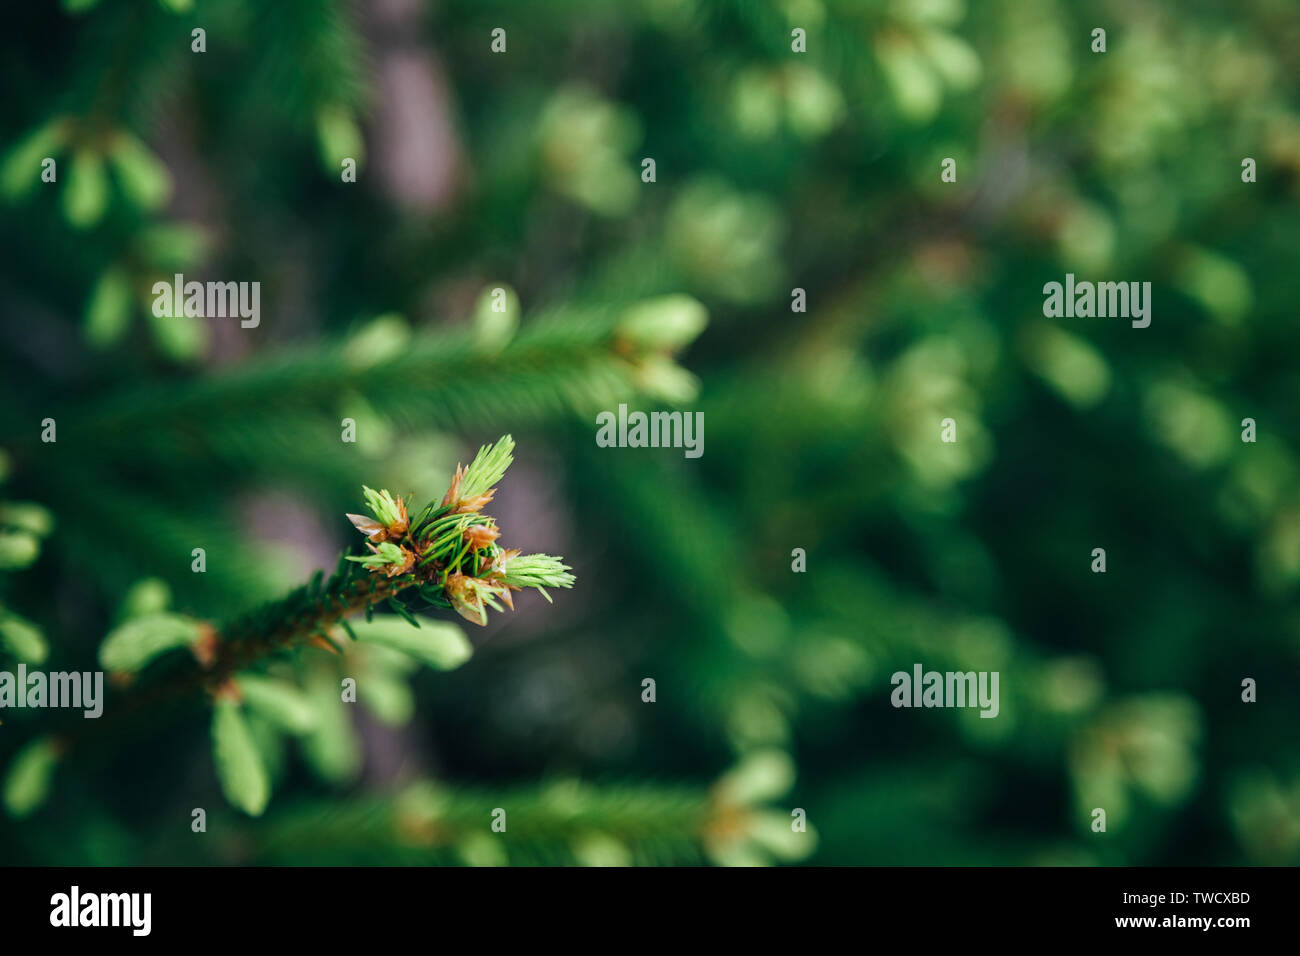 Young fir tree needles, horizontal close up fir tree branches with forest in the background. Copy space. Stock Photo